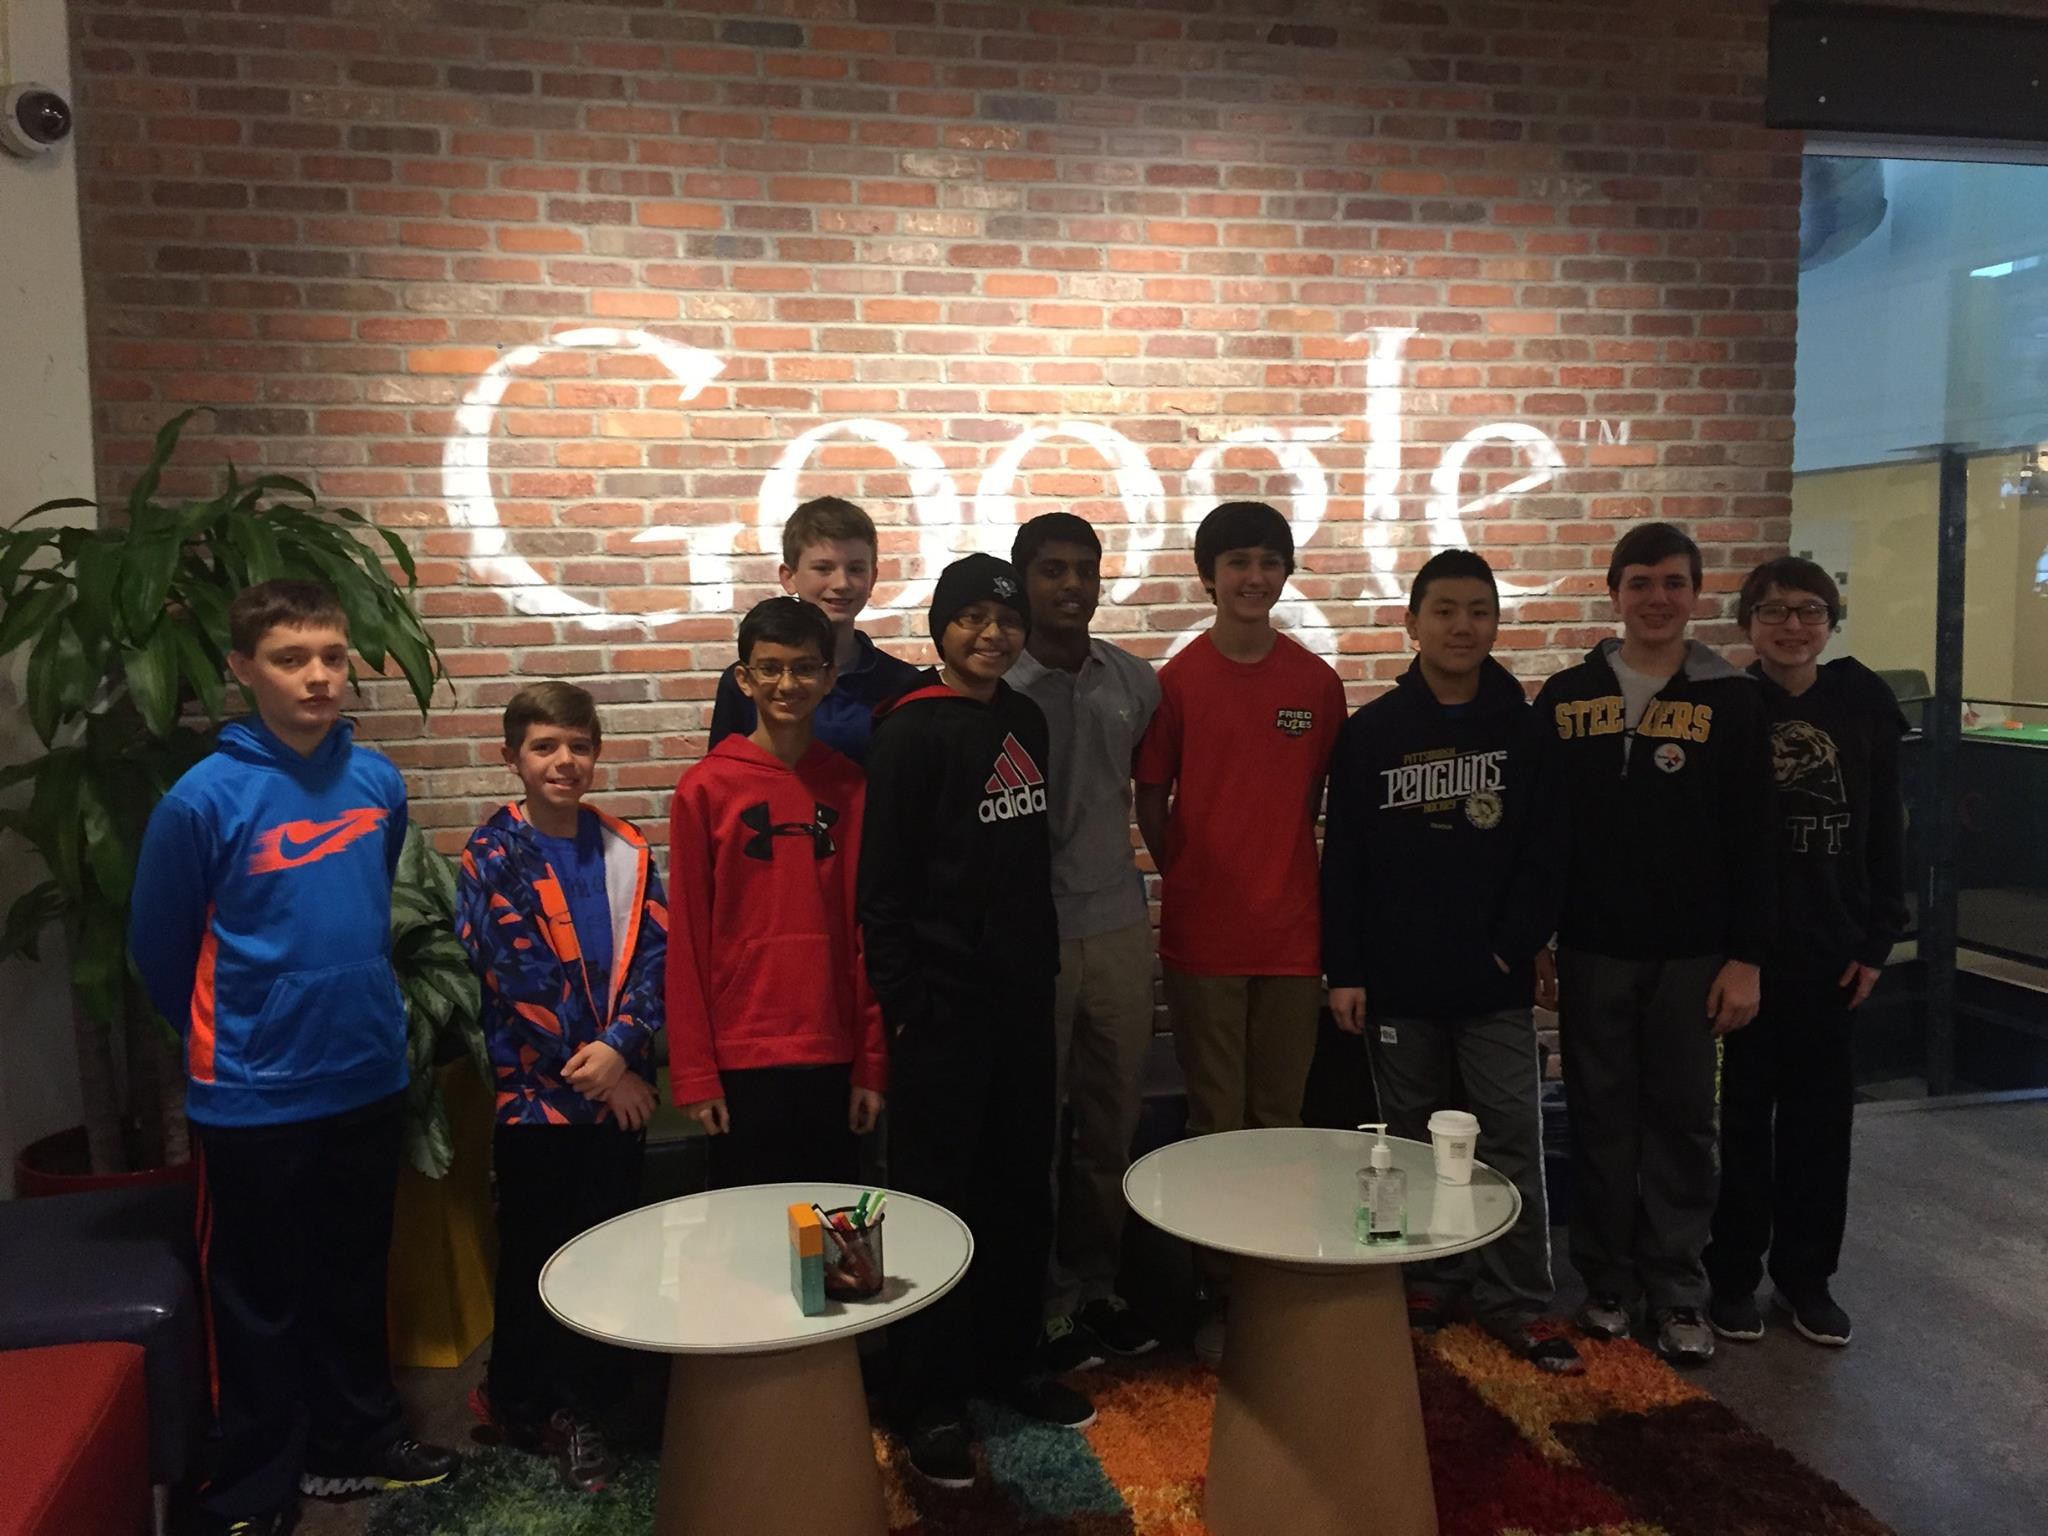 Touring Google and meeting with engineers to discuss innovation